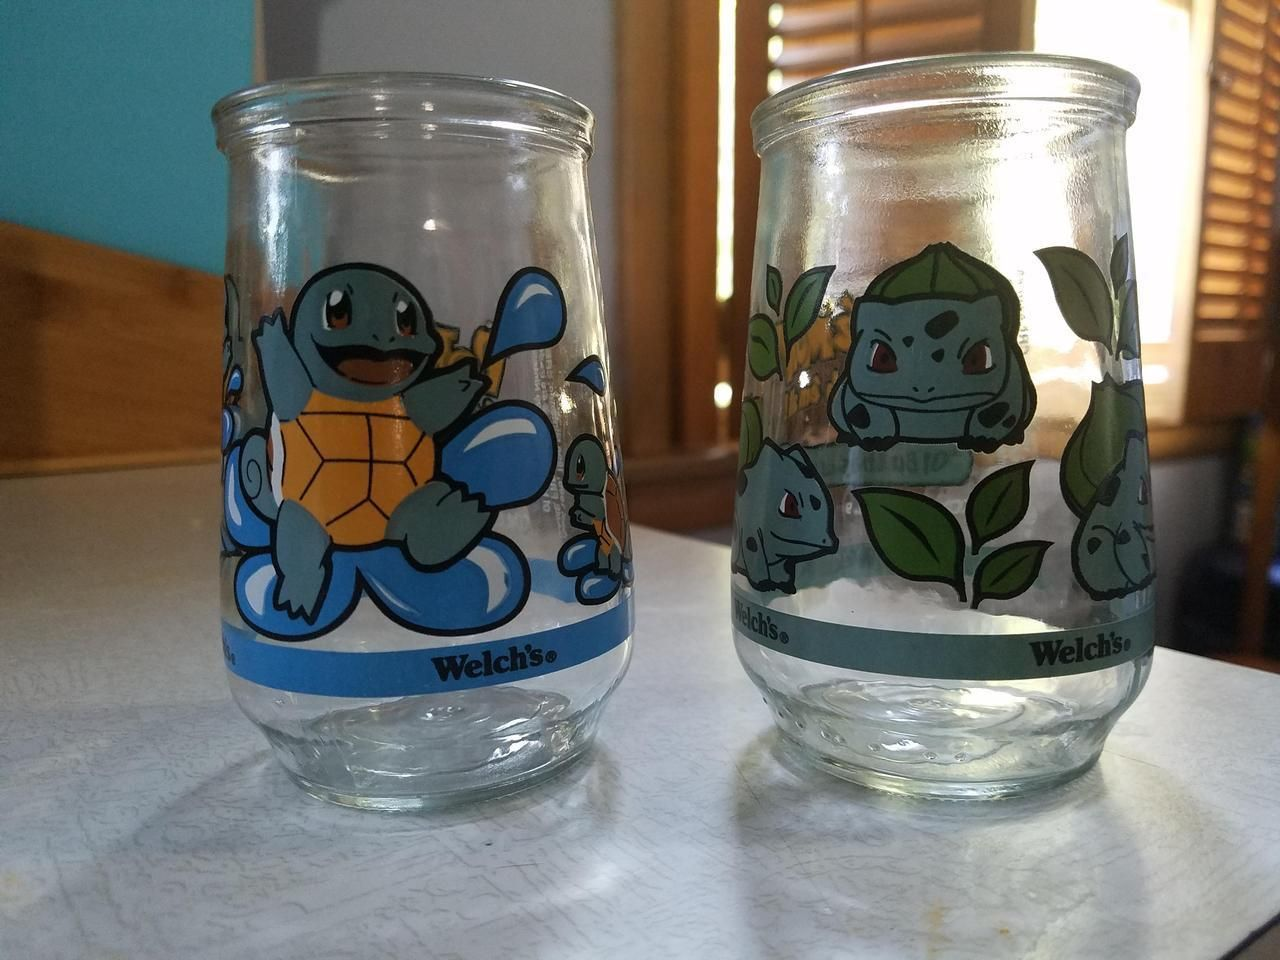 Pokemon Welshs Jelly Glasses from 1998 -